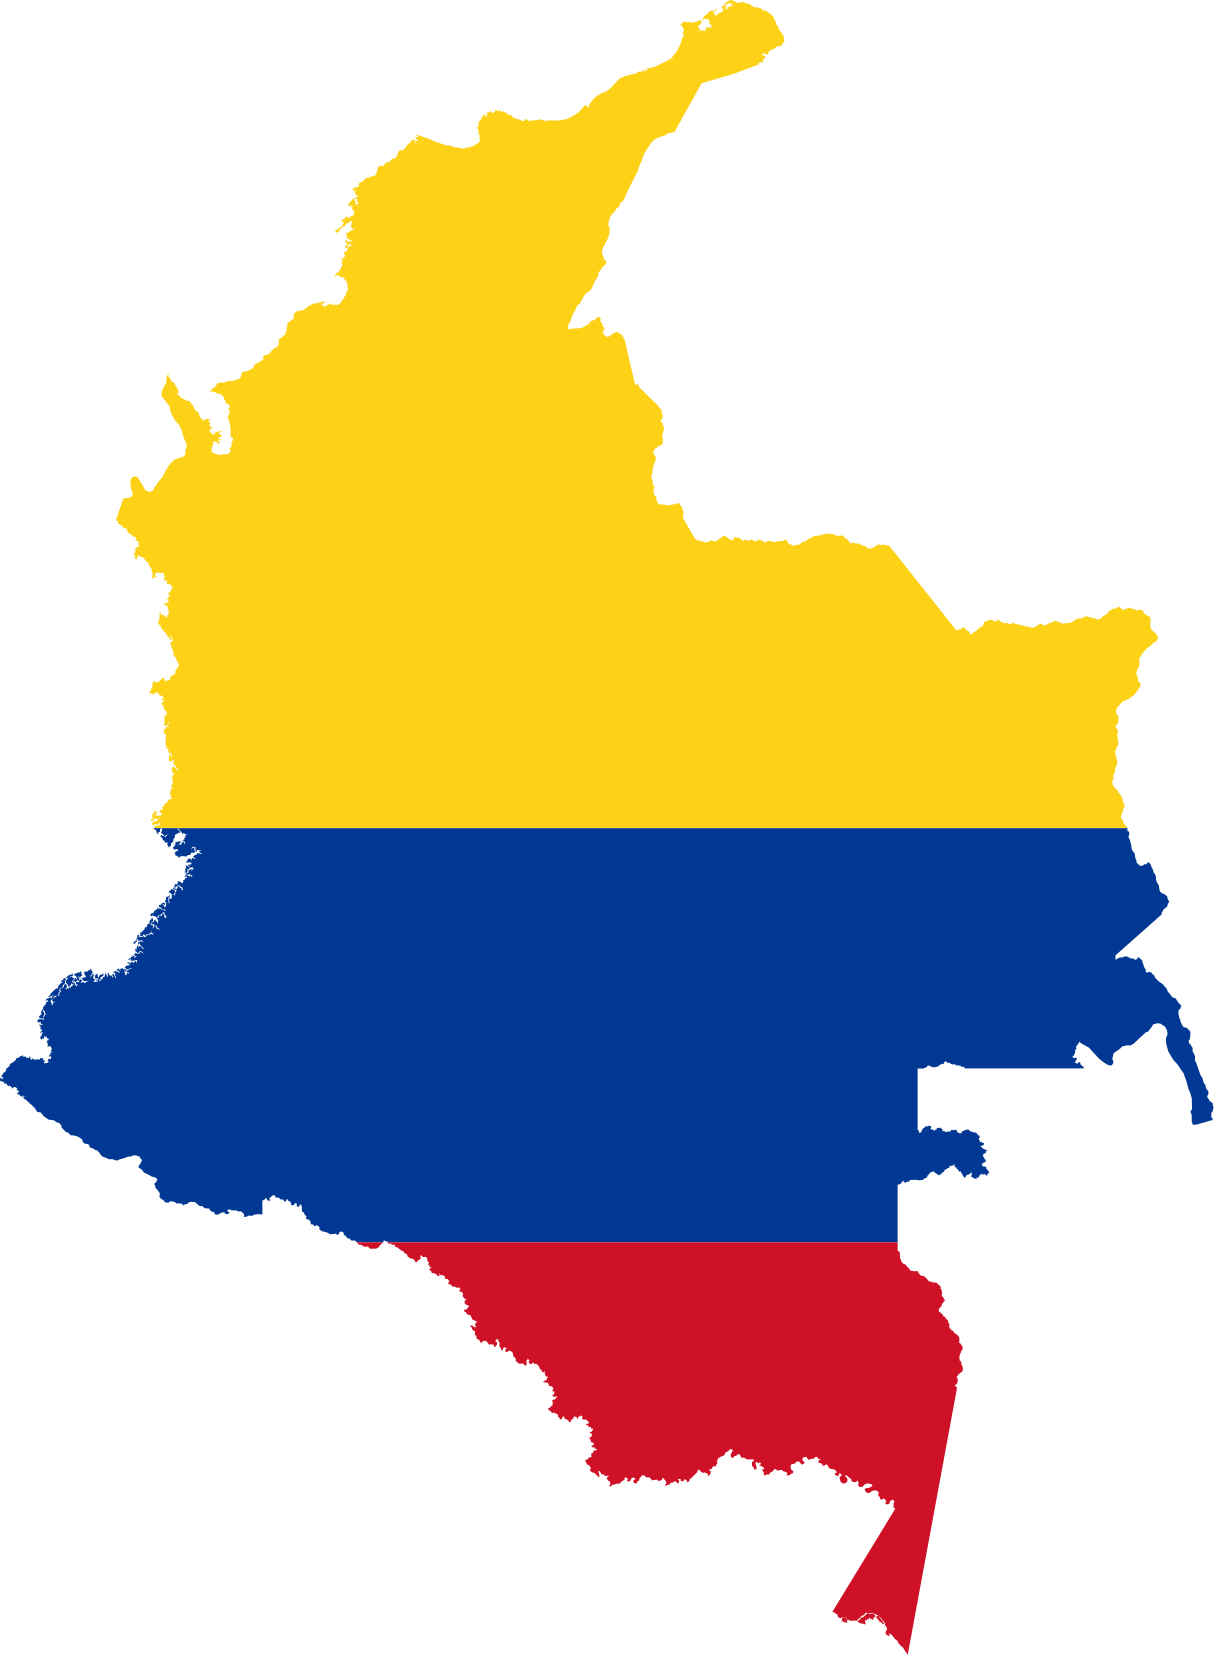 colombia map png